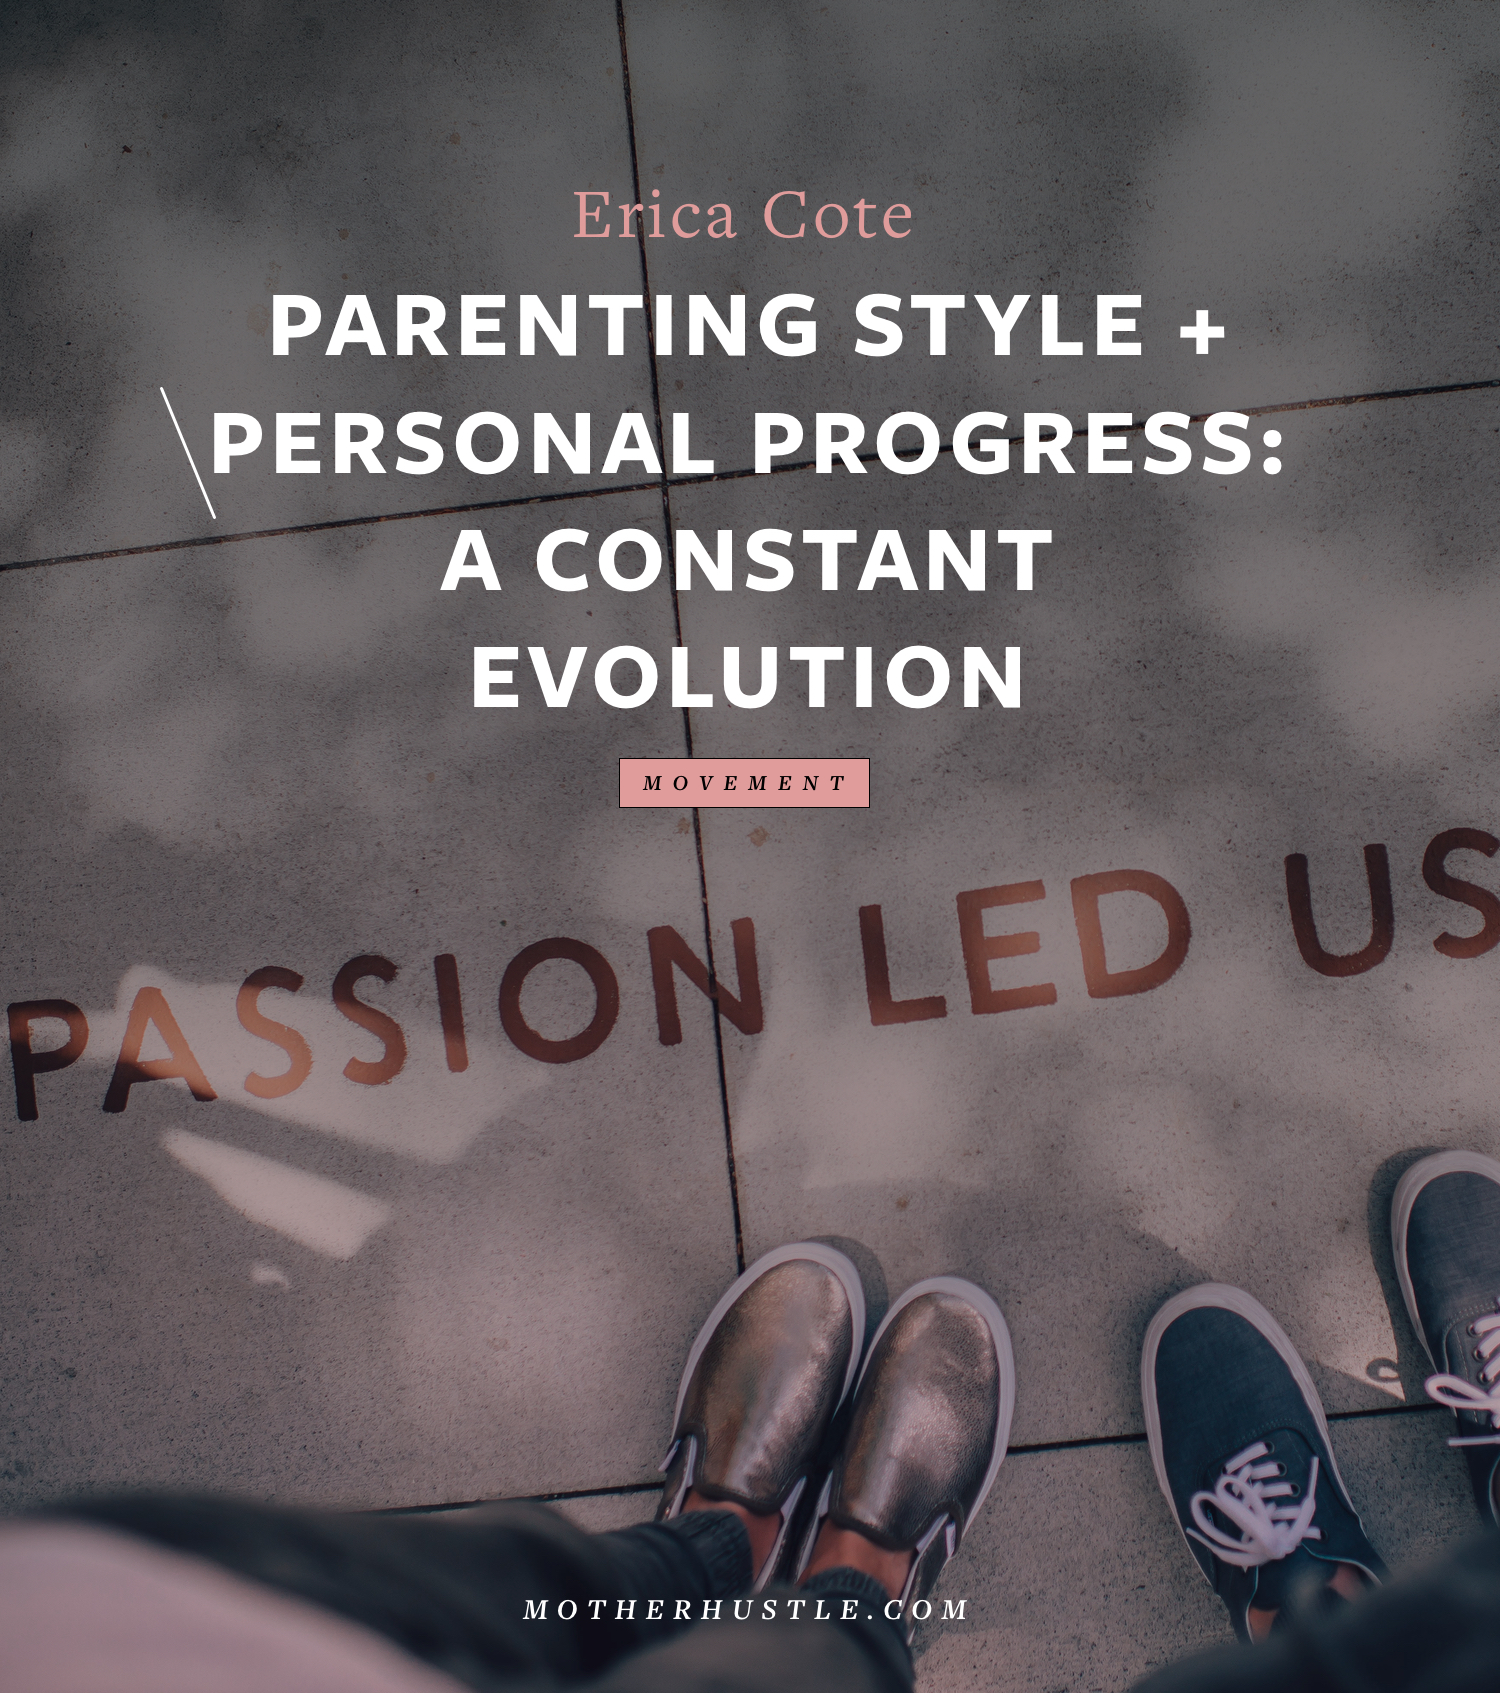 Parenting Style + Personal Progress: A Constant Evolution